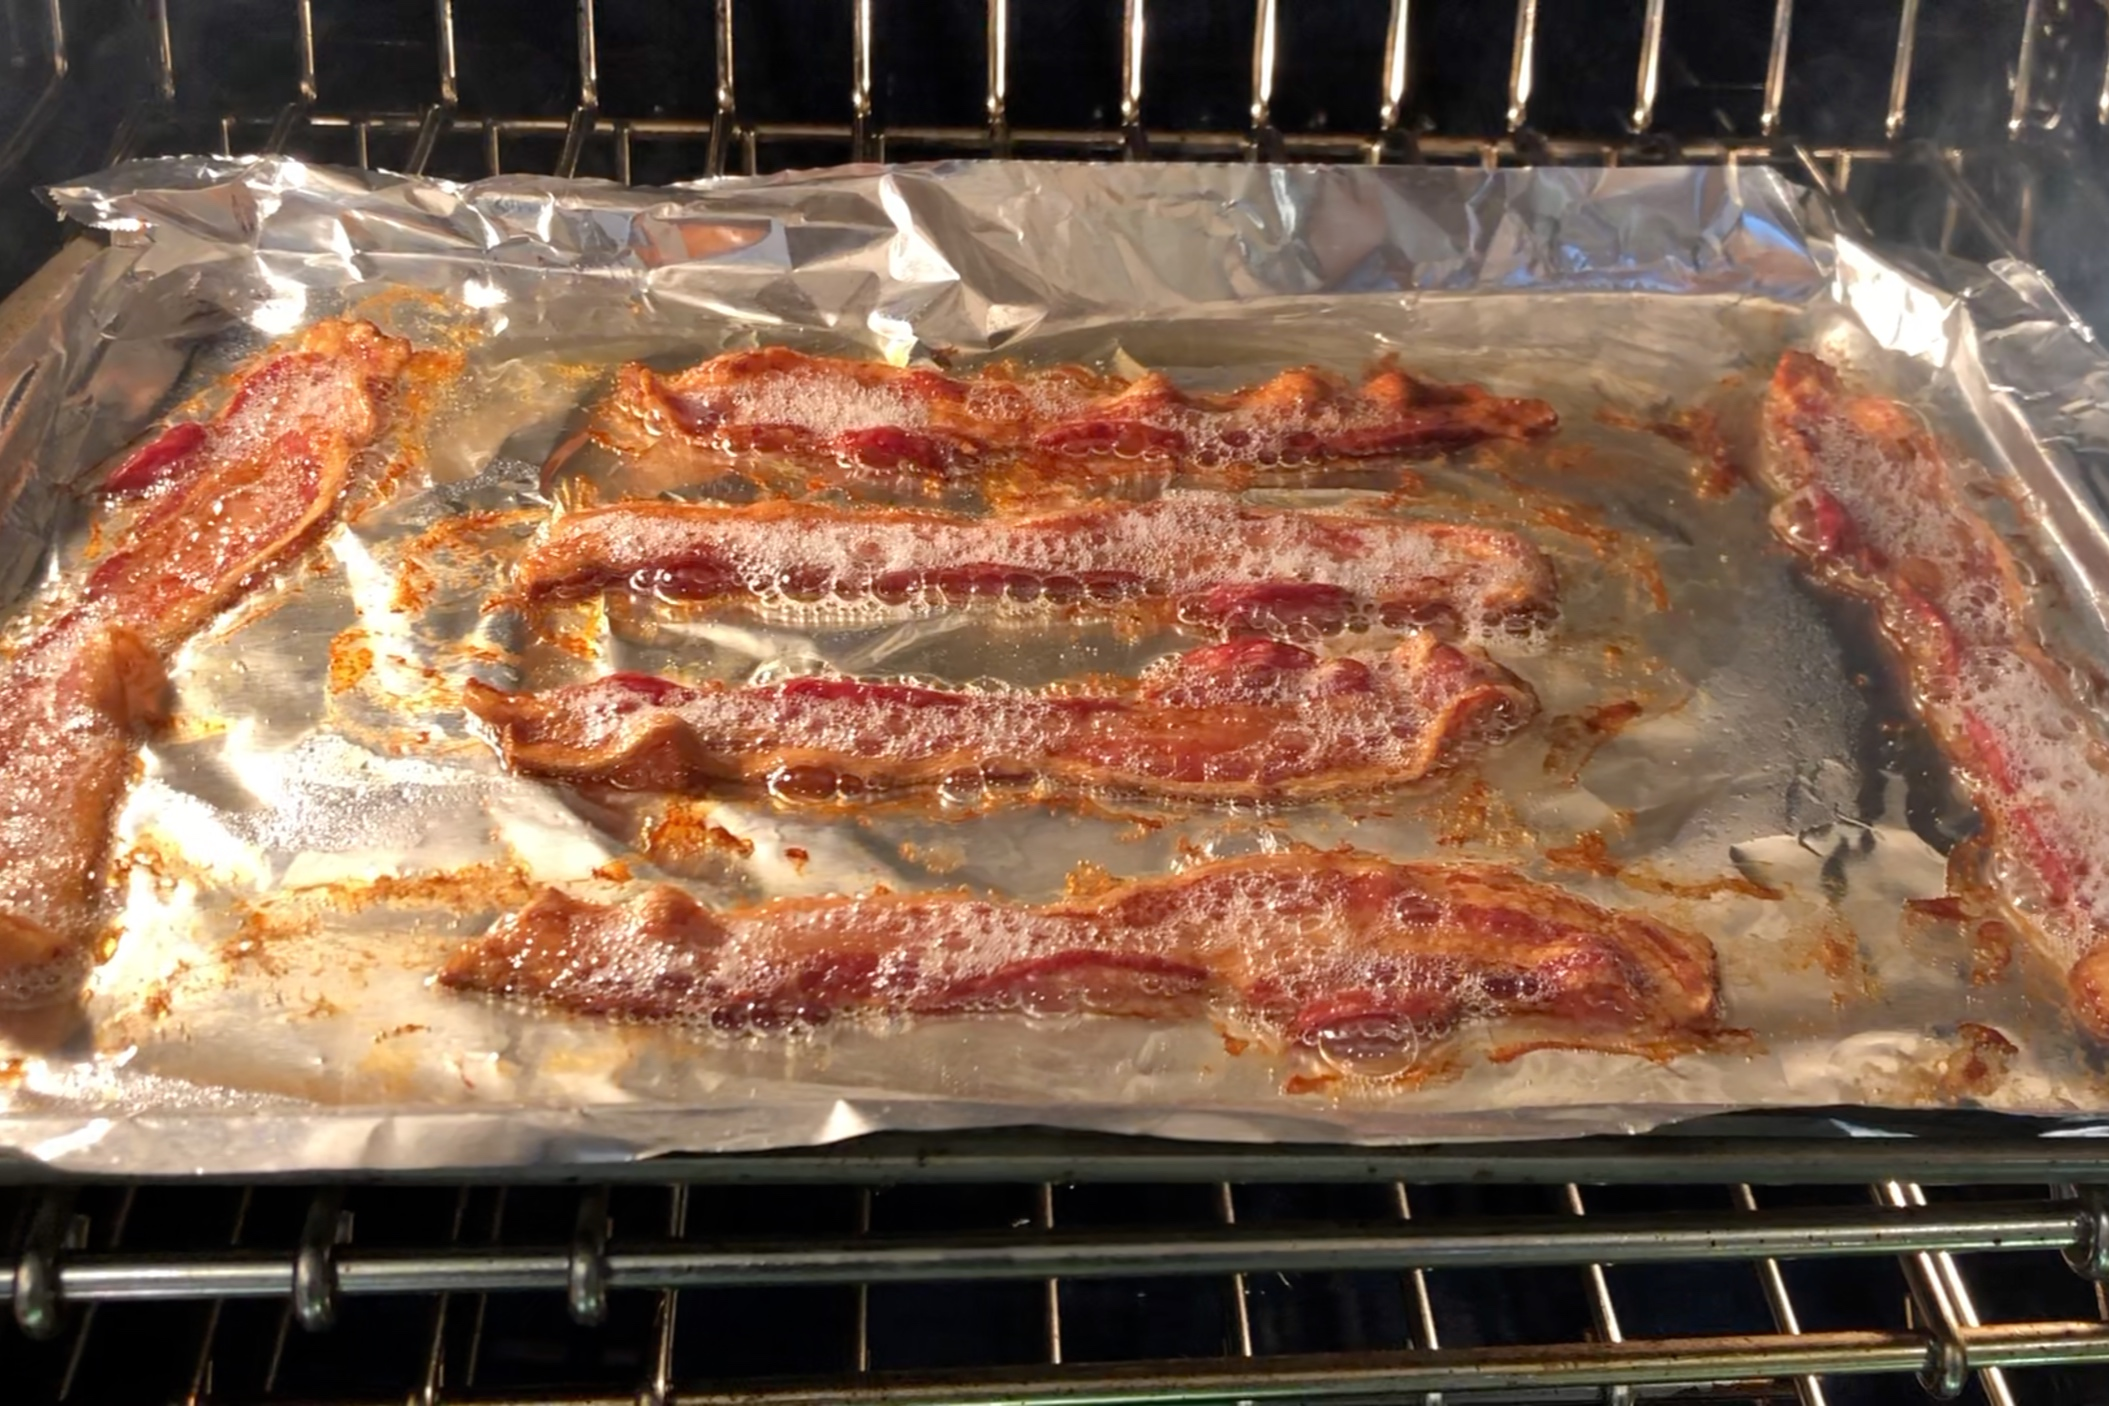 4. Cook bacon in the oven, stovetop or microwave until crispy. -